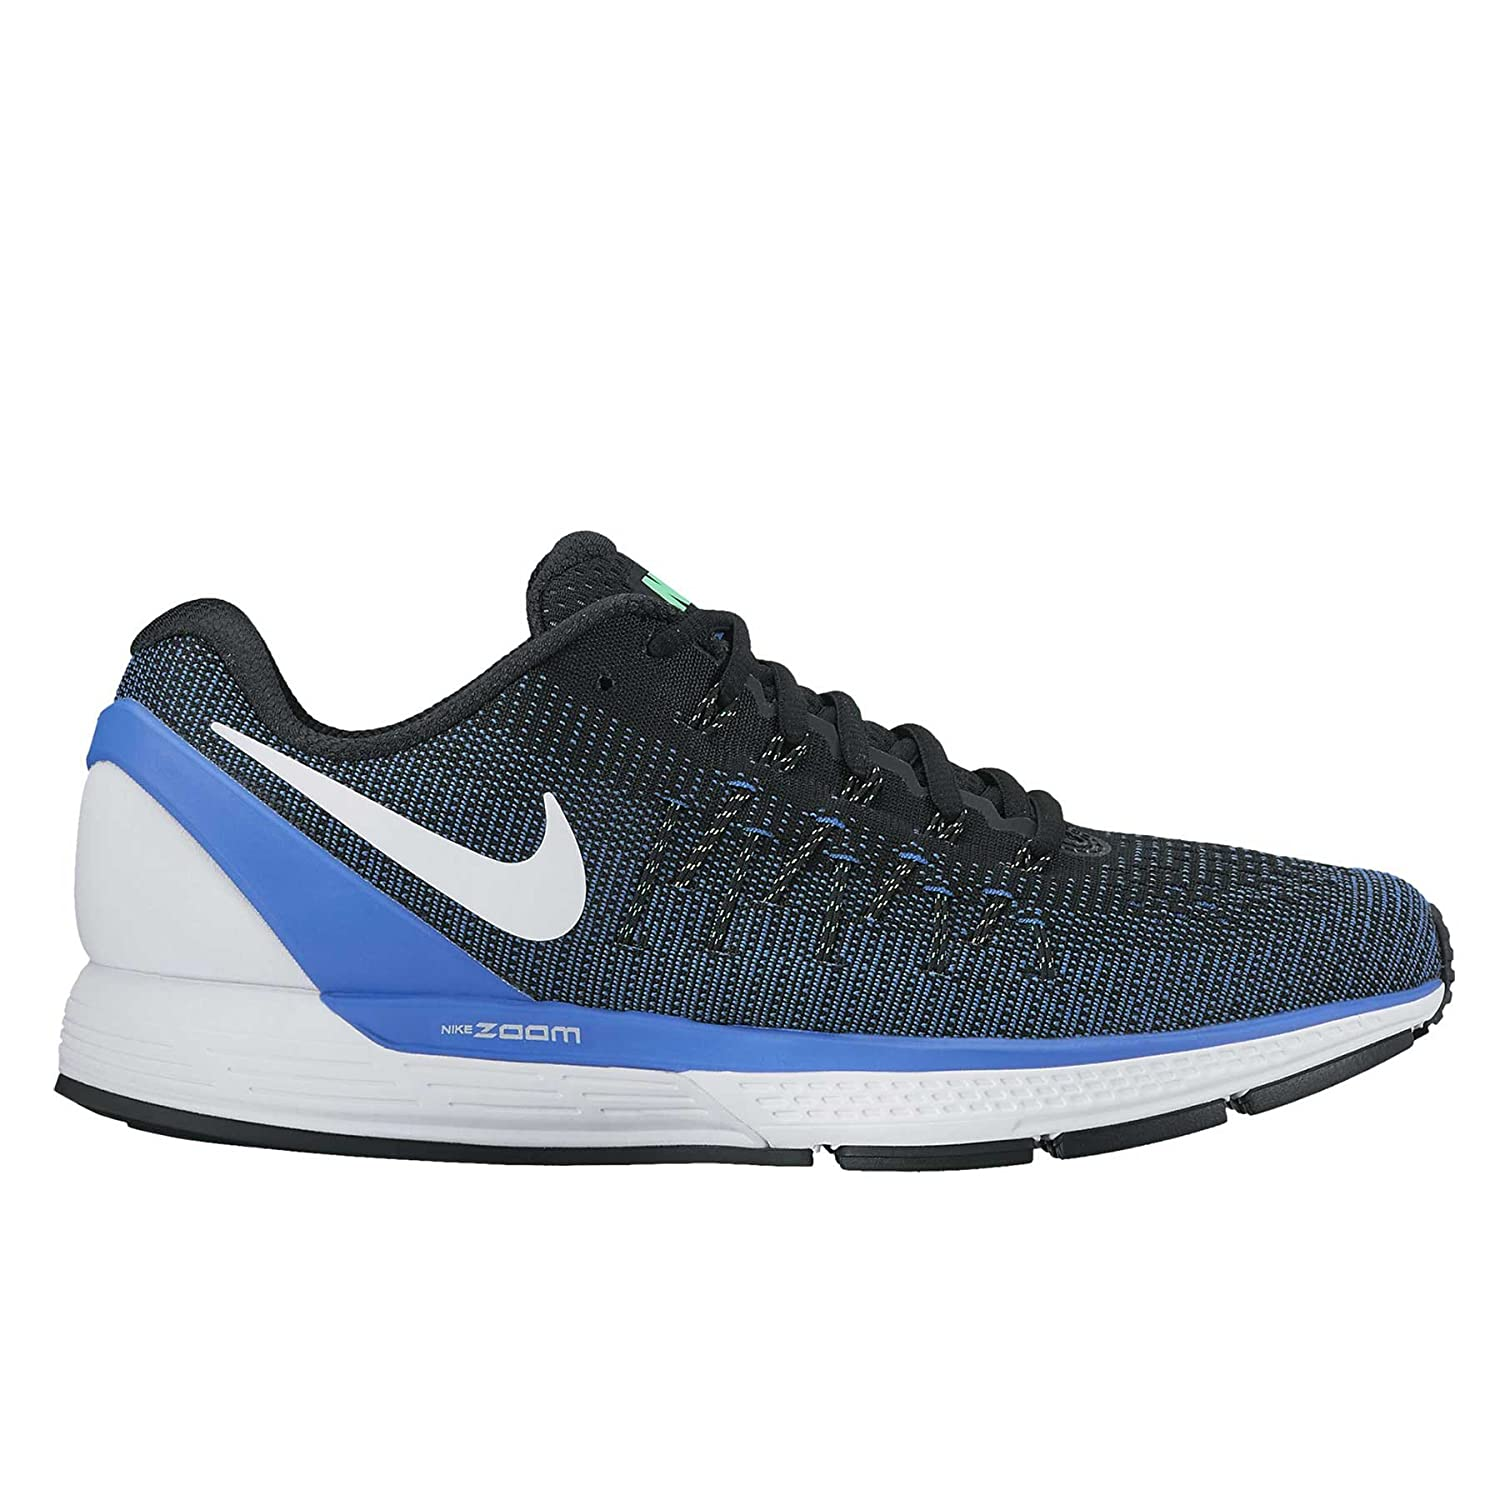 Nike Air Zoom Odyssey 2, Zapatillas de Running para Hombre 42.5 EU|Negro (Black/Medium Blue/Summit White)